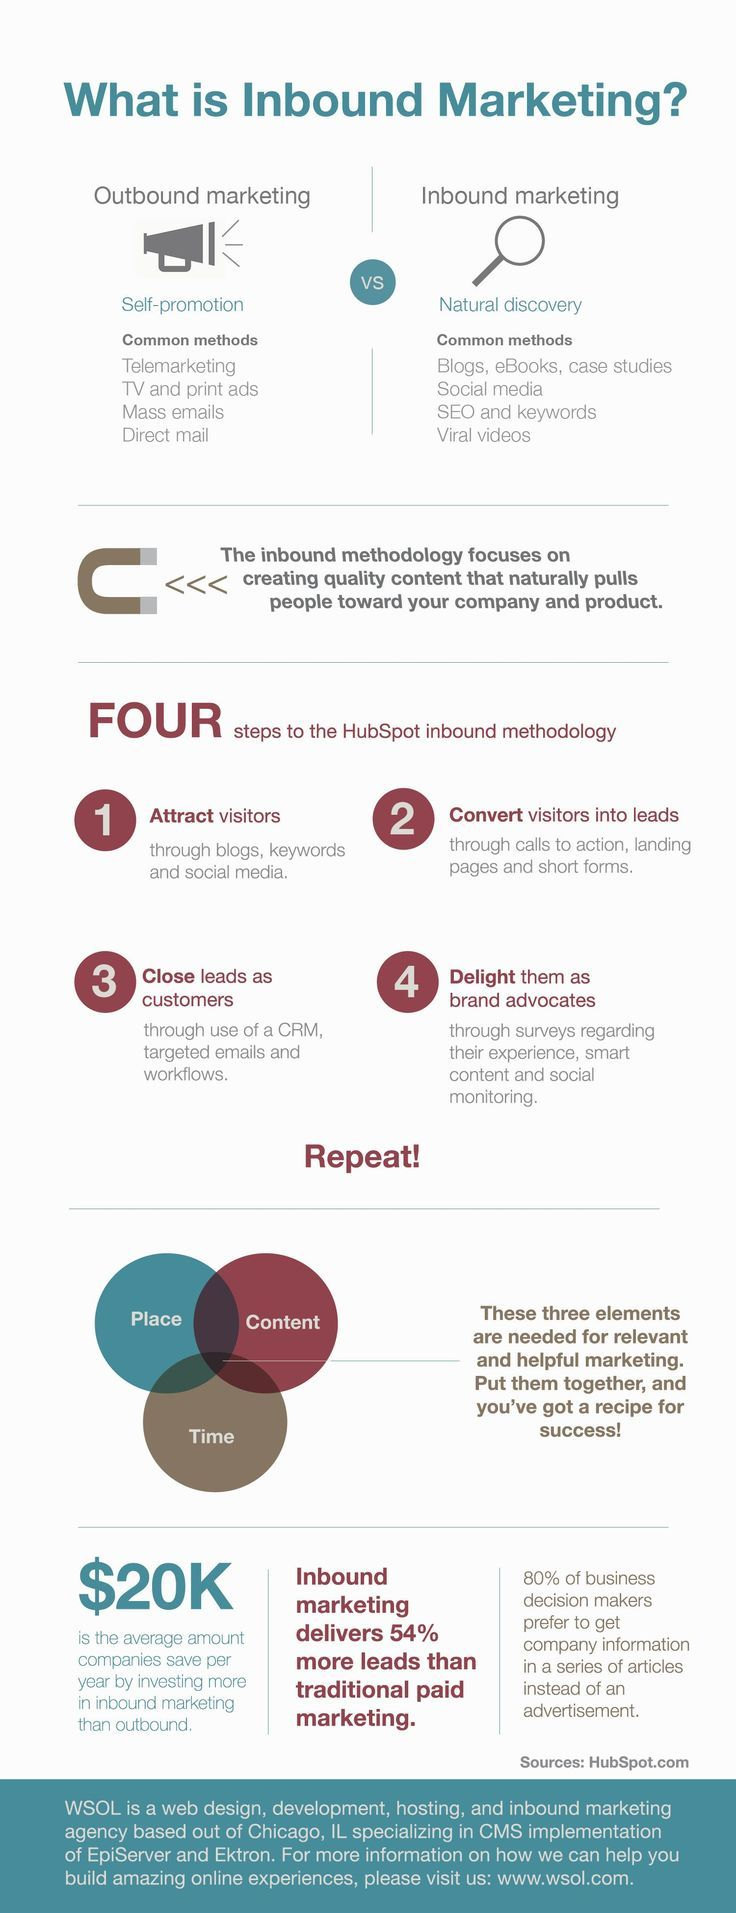 Do you know about Inbound Marketing?